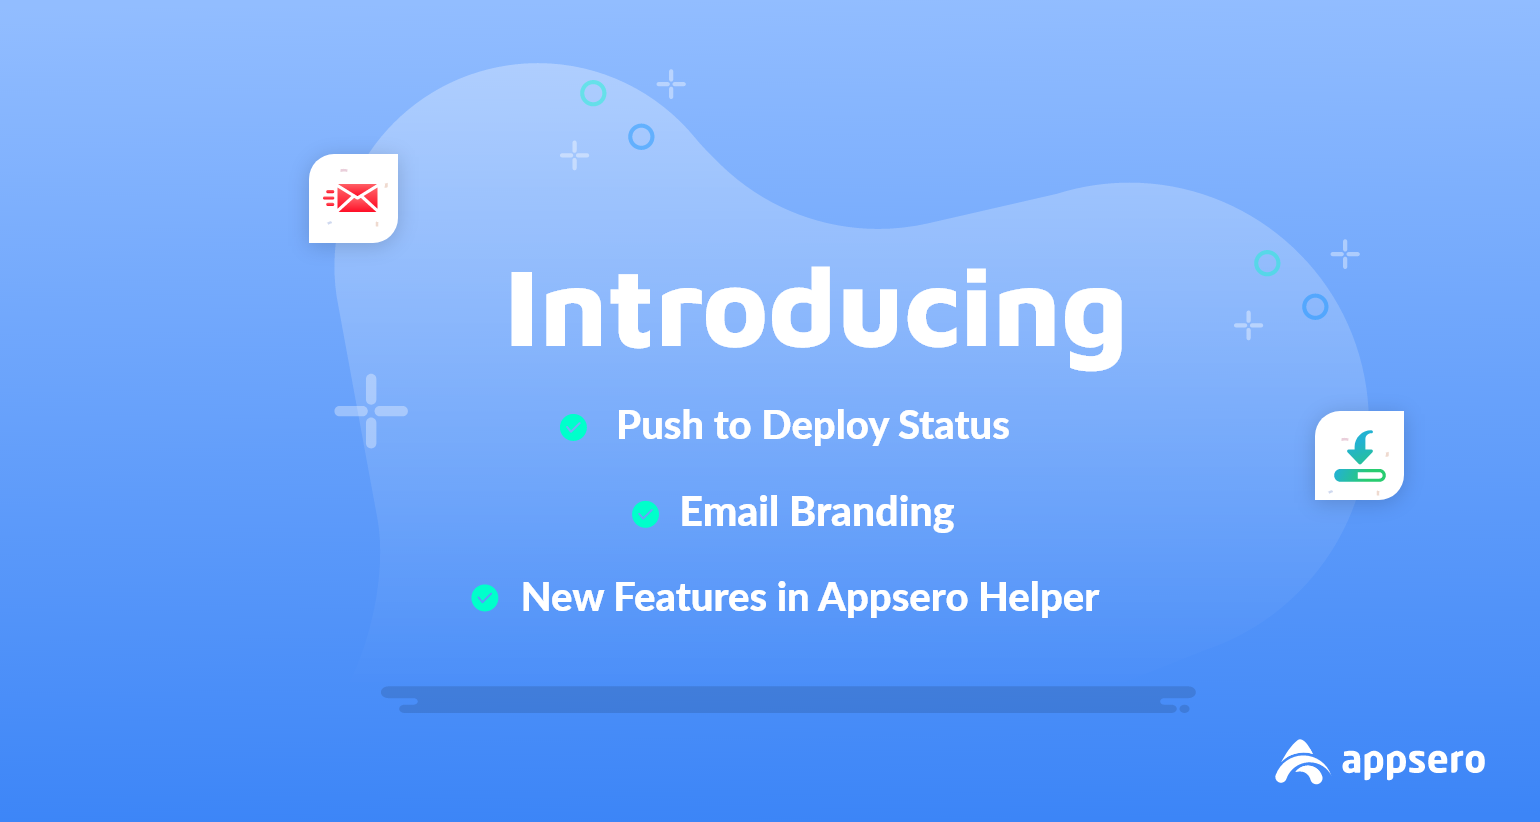 Introducing Push To Deploy Status & Email Branding With Appsero